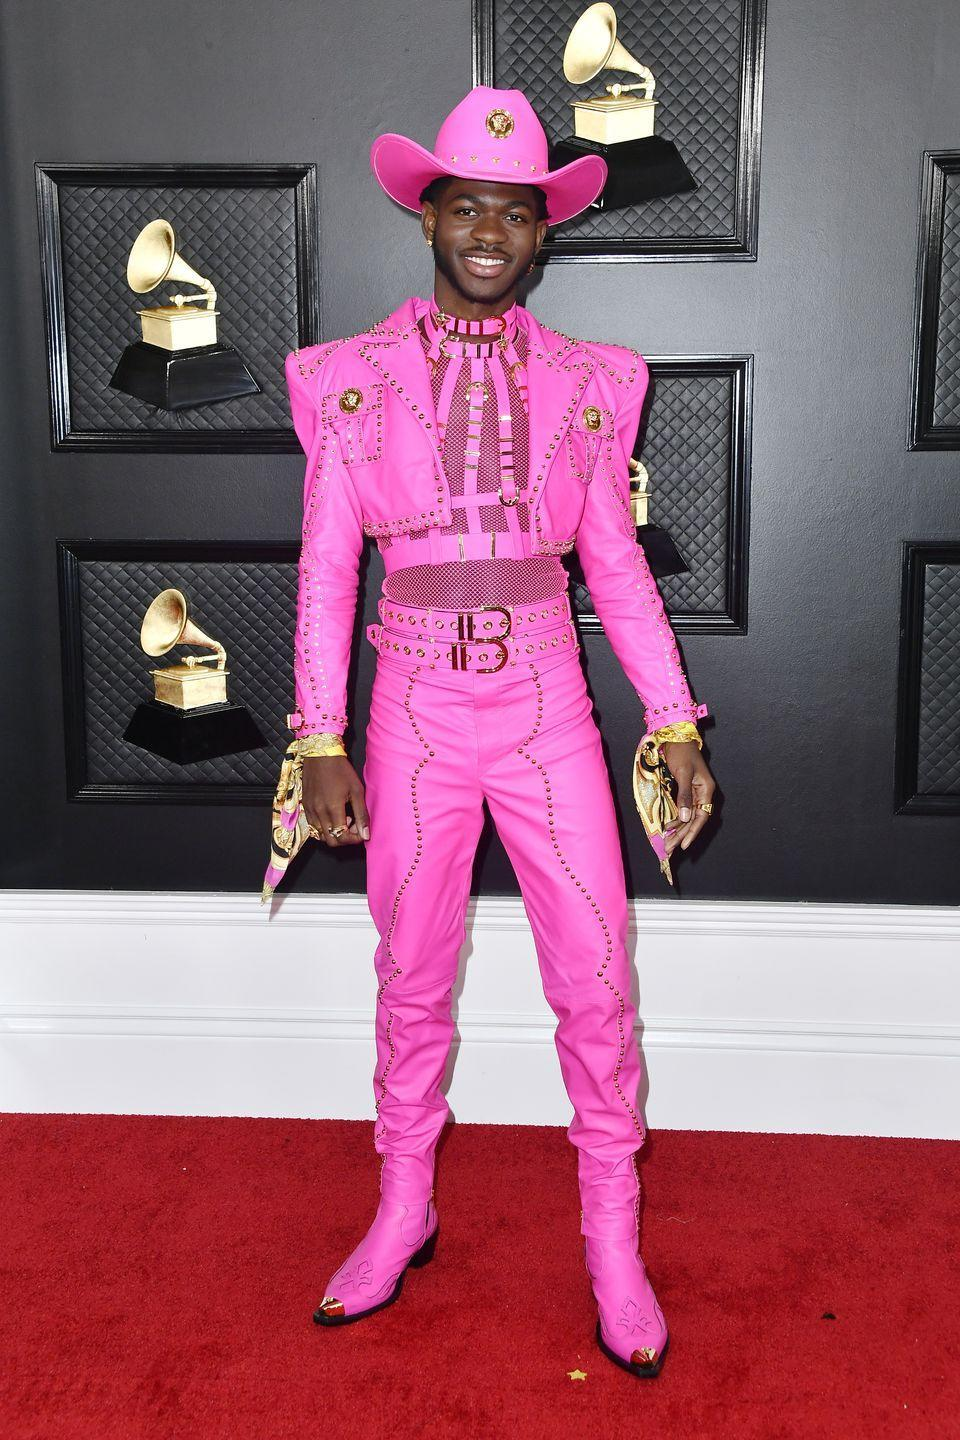 <p>For his first-ever Grammy's red carpet look, Lil Nas went full-out pretty in pink in Versace. He paired his sheer top with a cropped jacket and buckled details. Elle Woods would approve.</p>